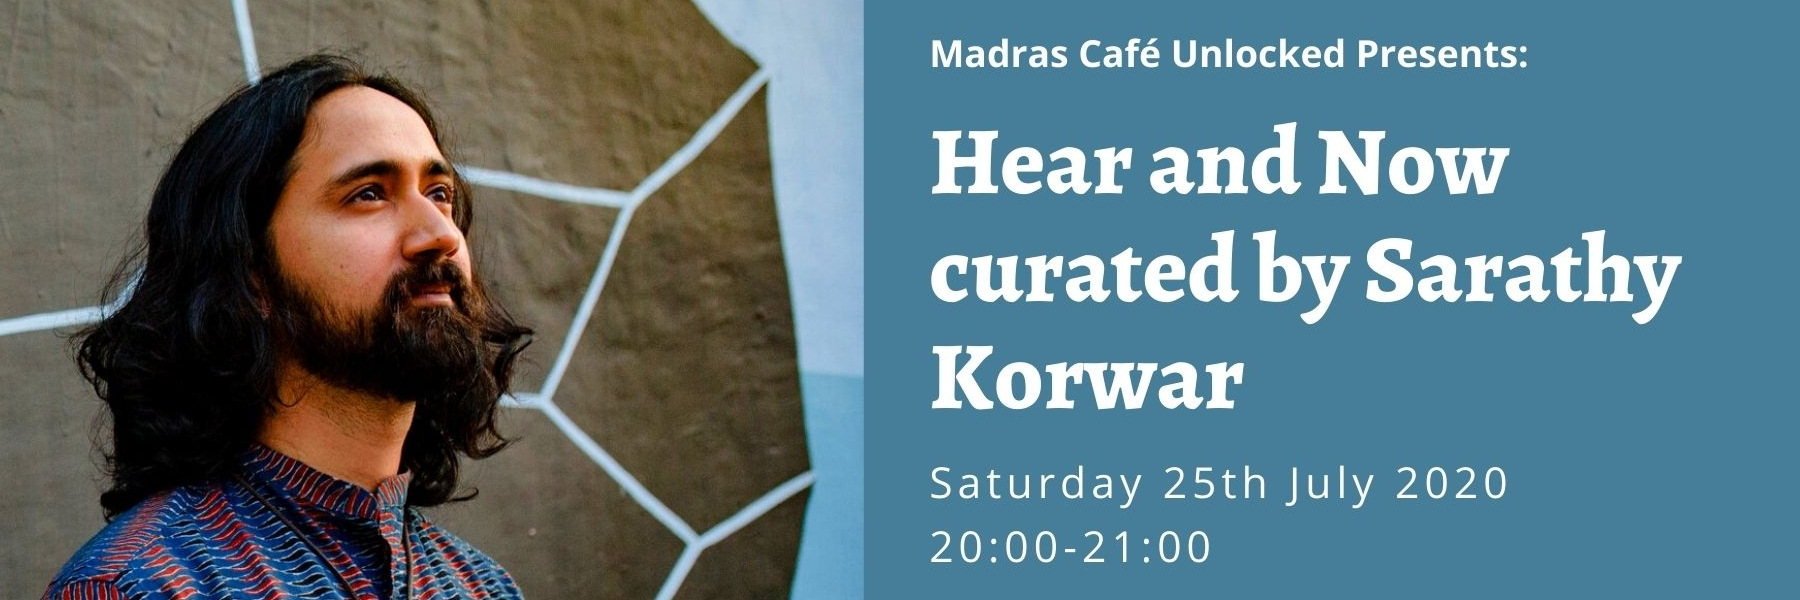 Madras Cafe Unlocked 2020: Here and Now curated by Sarathy Korwar